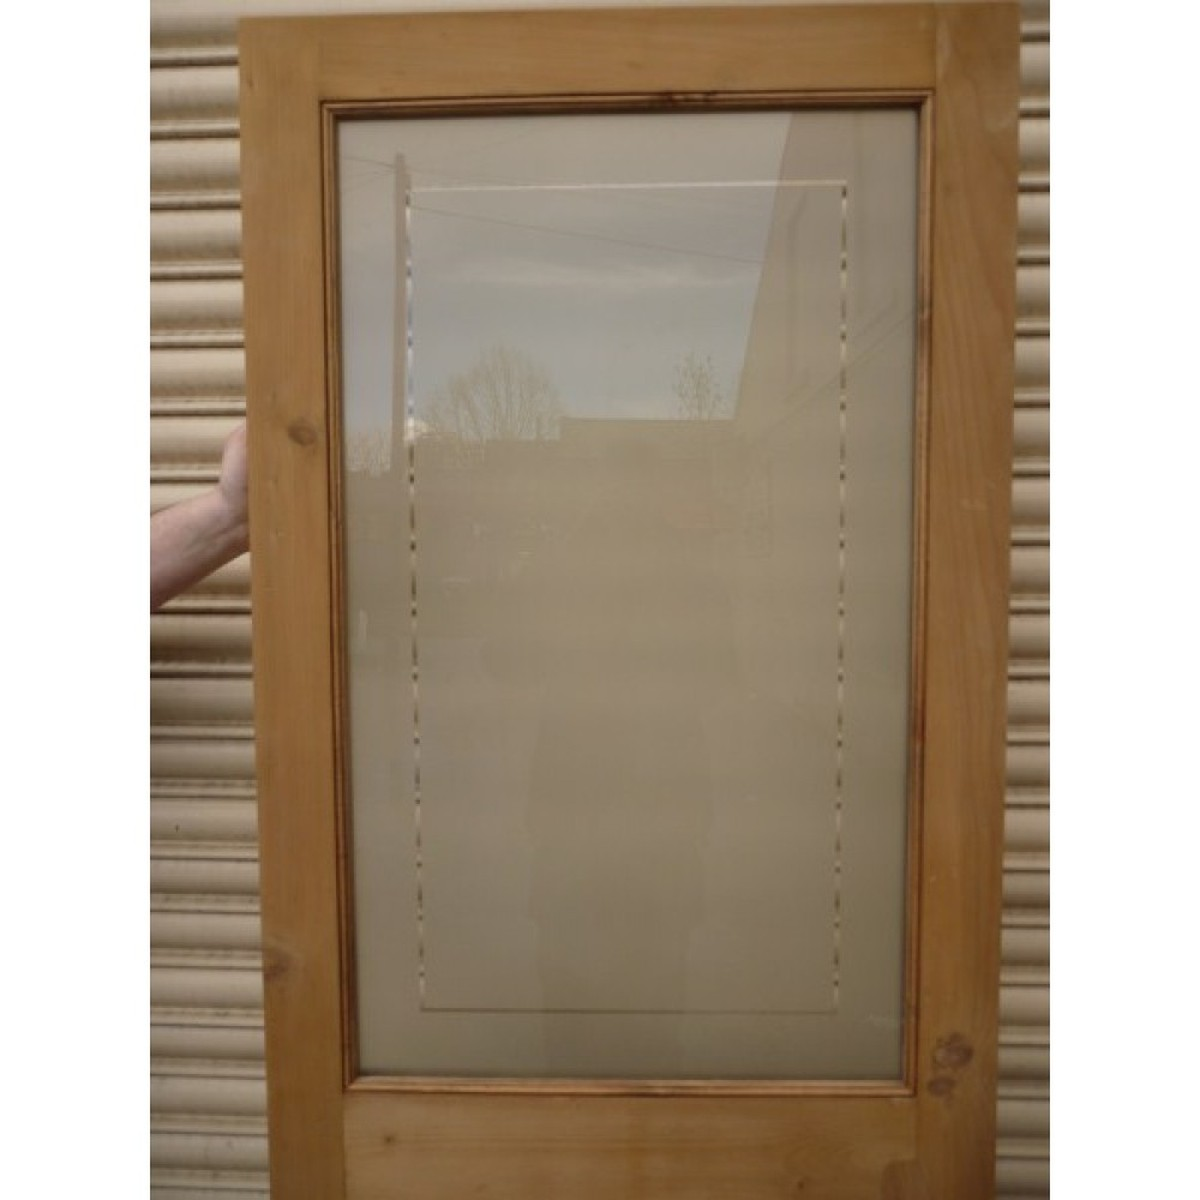 Secondhand vintage and reclaimed doors and windows for Double glazed glass panels